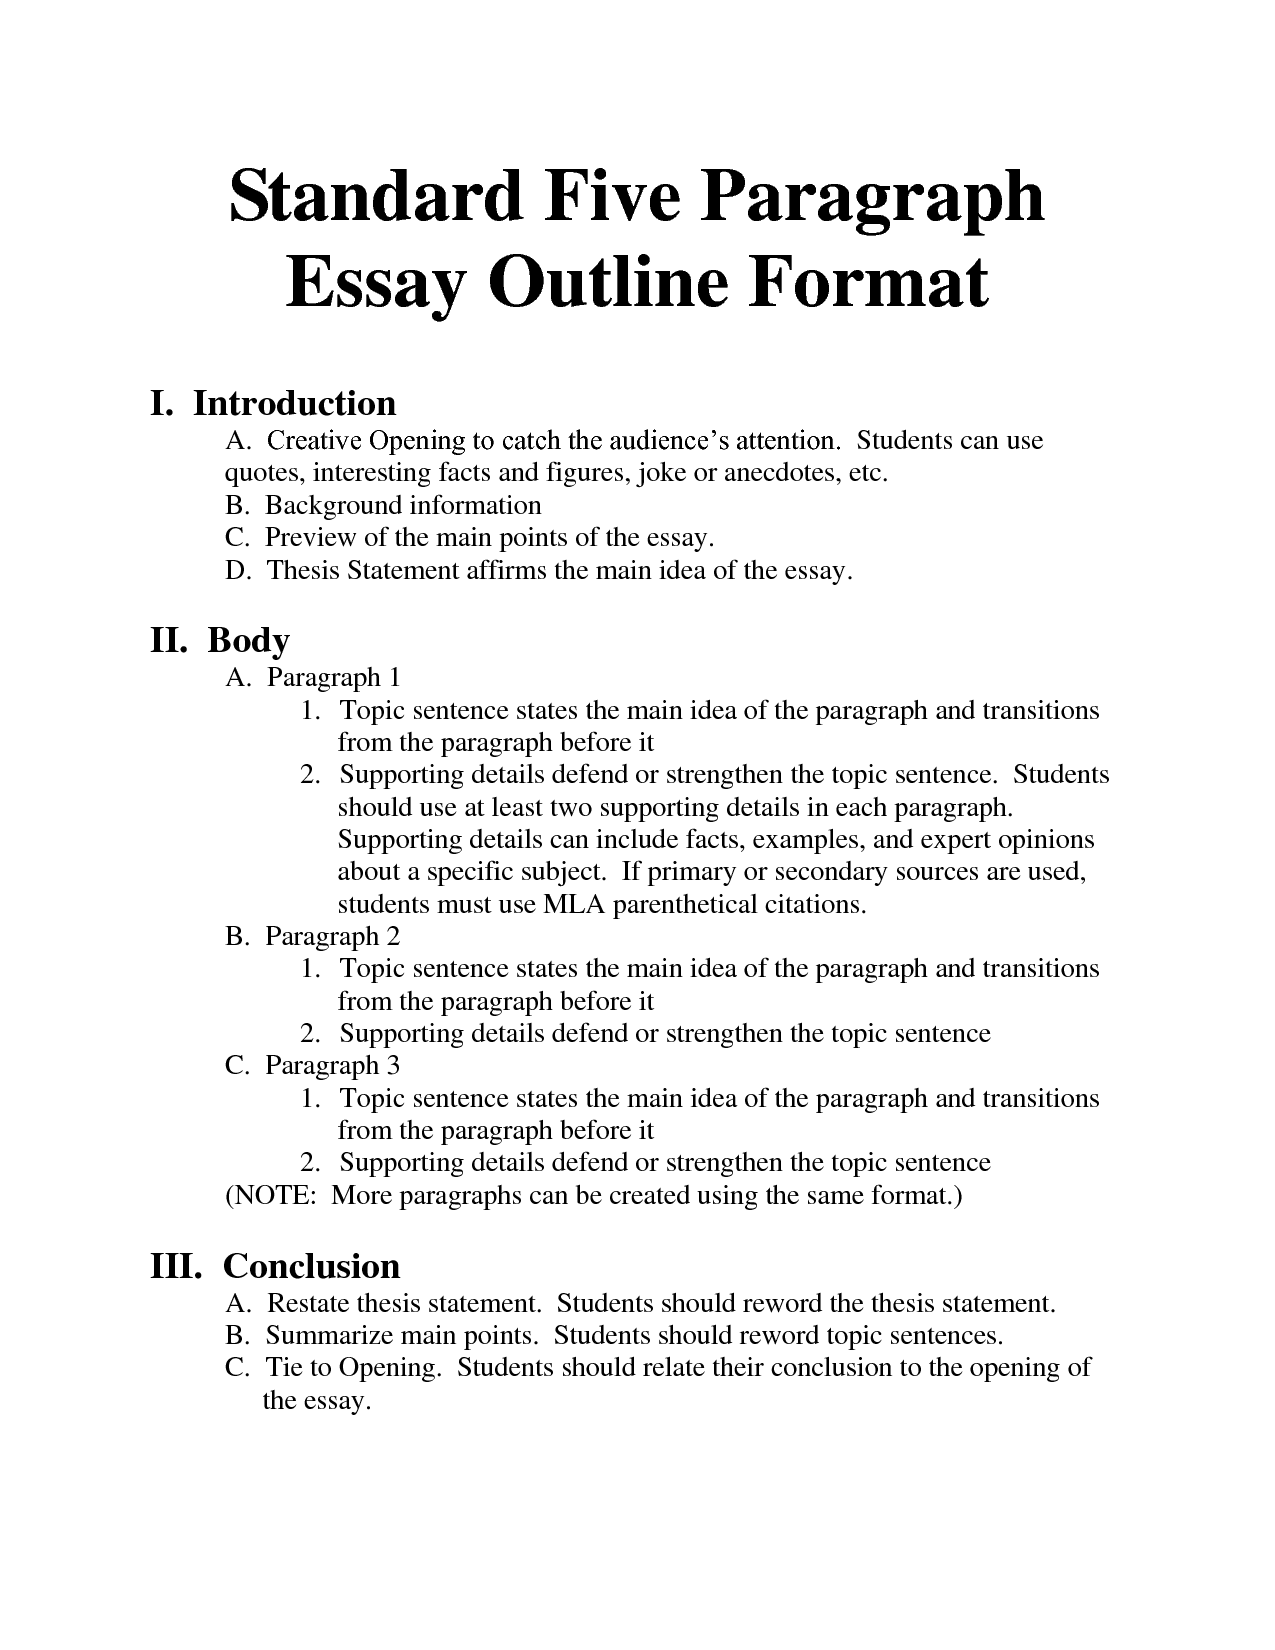 standard 5 paragraph essay outline format | teaching | pinterest